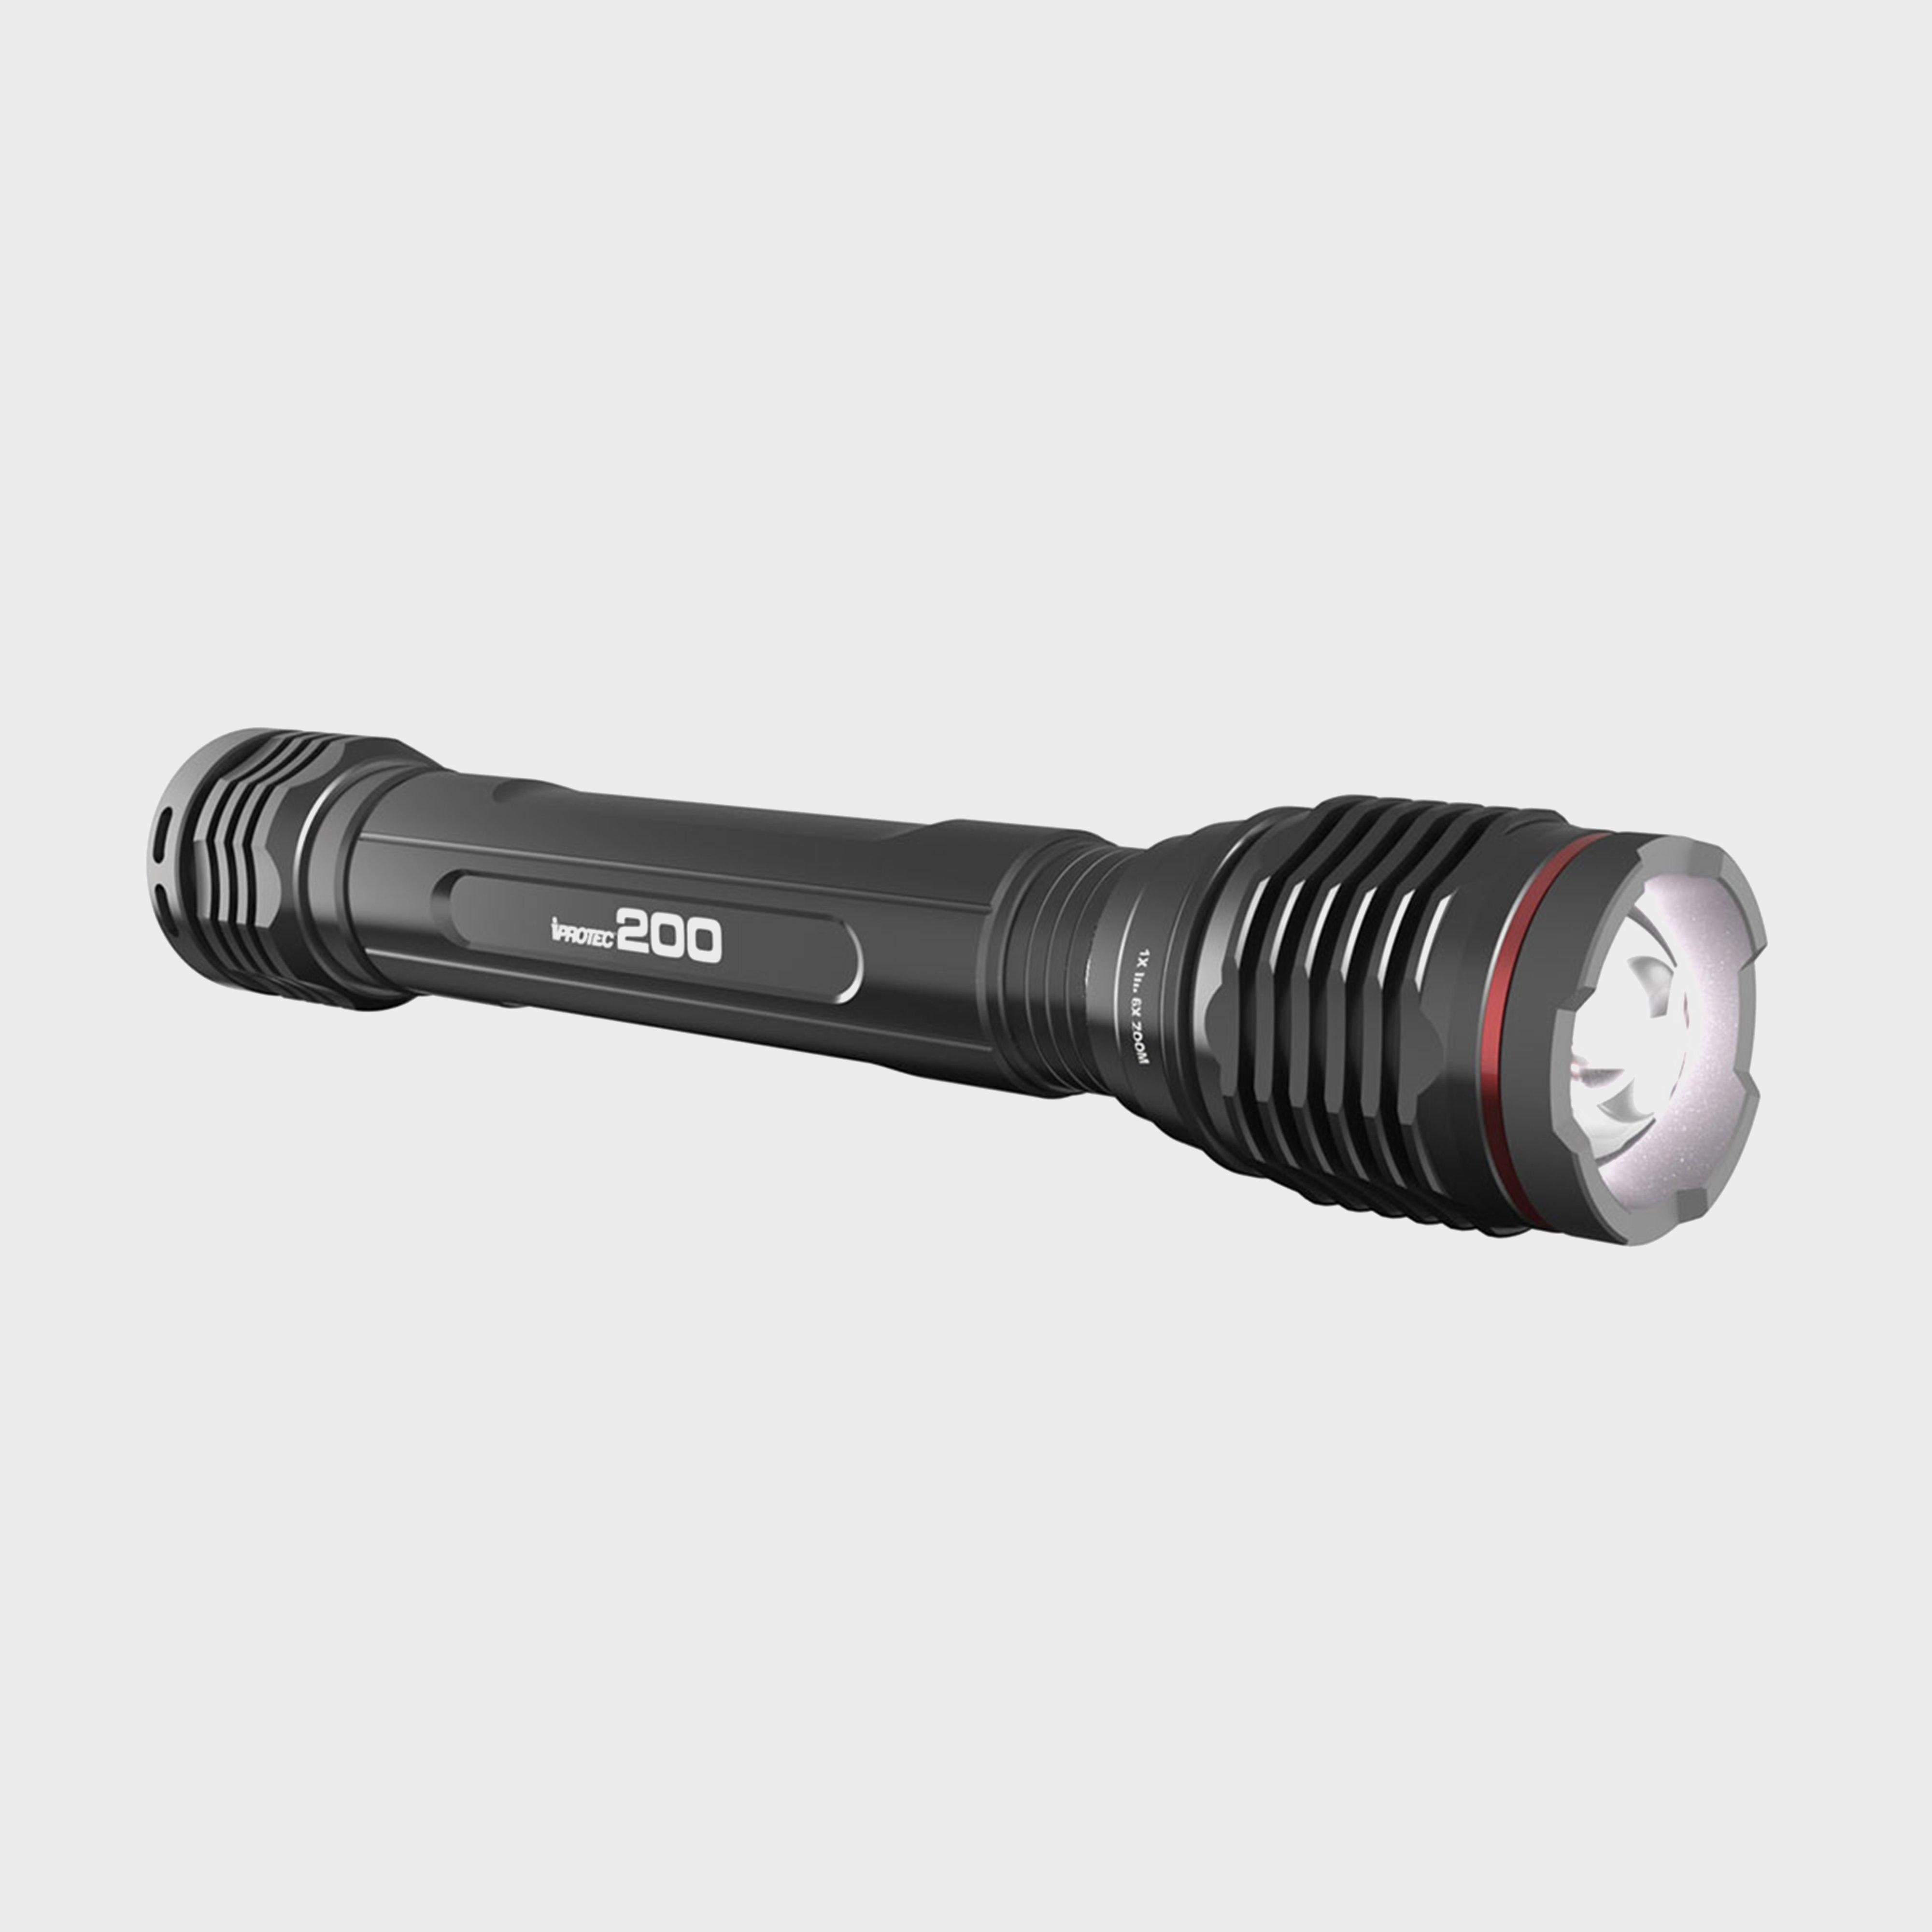 Iprotec Iprotec Pro 200 Torch